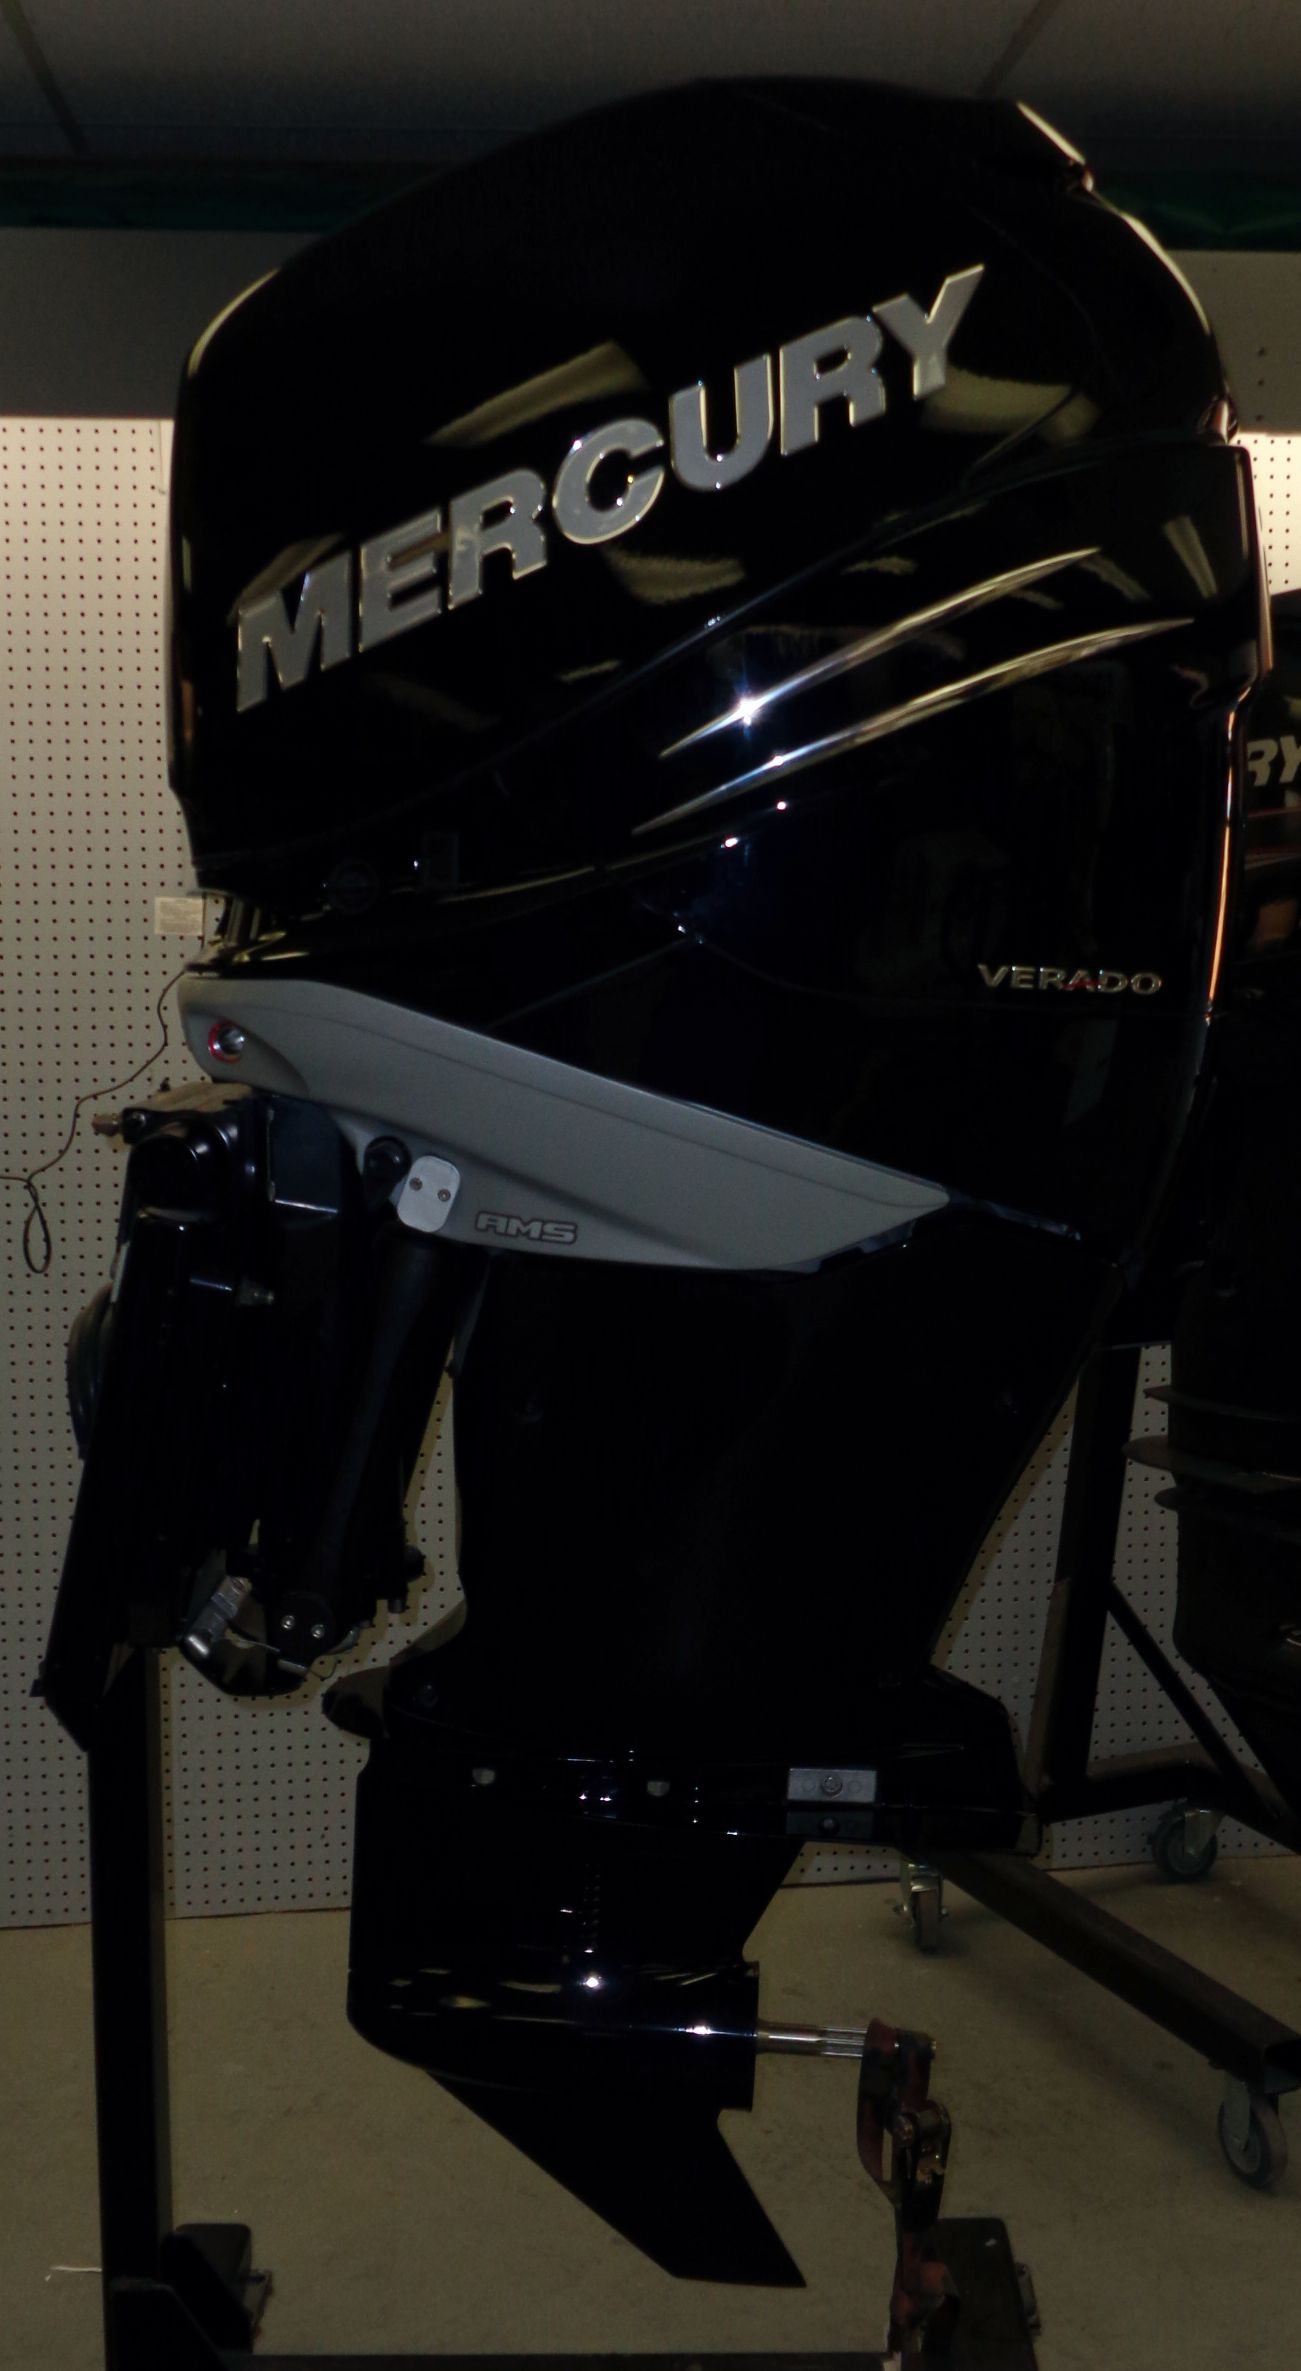 Used 1985 mercury 150 xr2 elpto 150hp outboard boat motor for Buy new mercury outboard motor